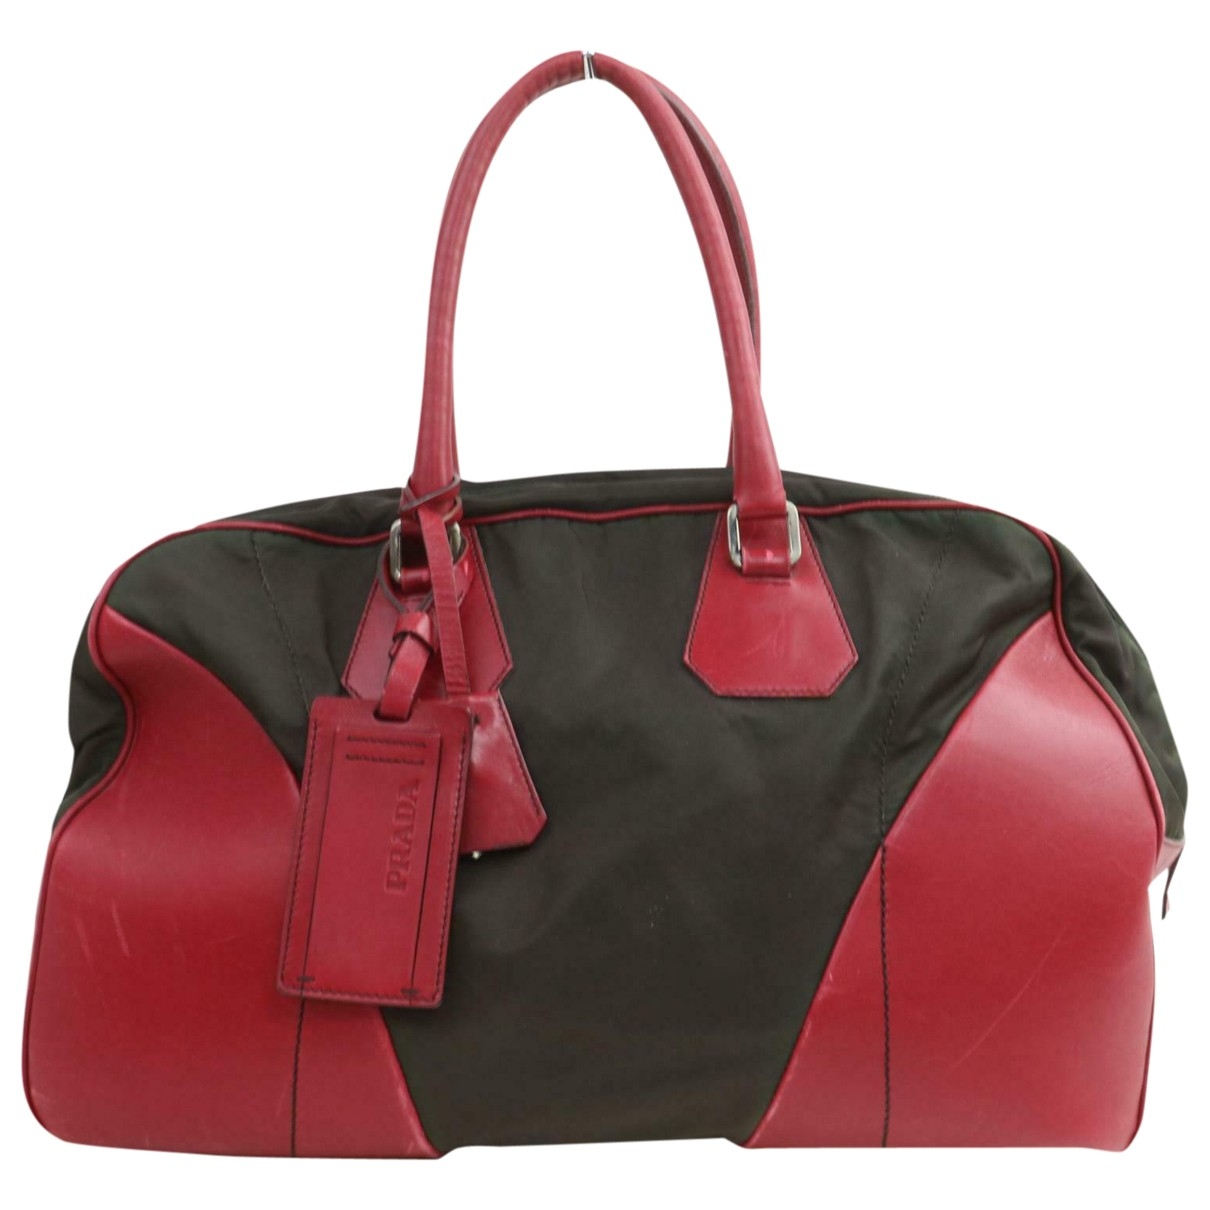 Prada \N Red handbag for Women \N